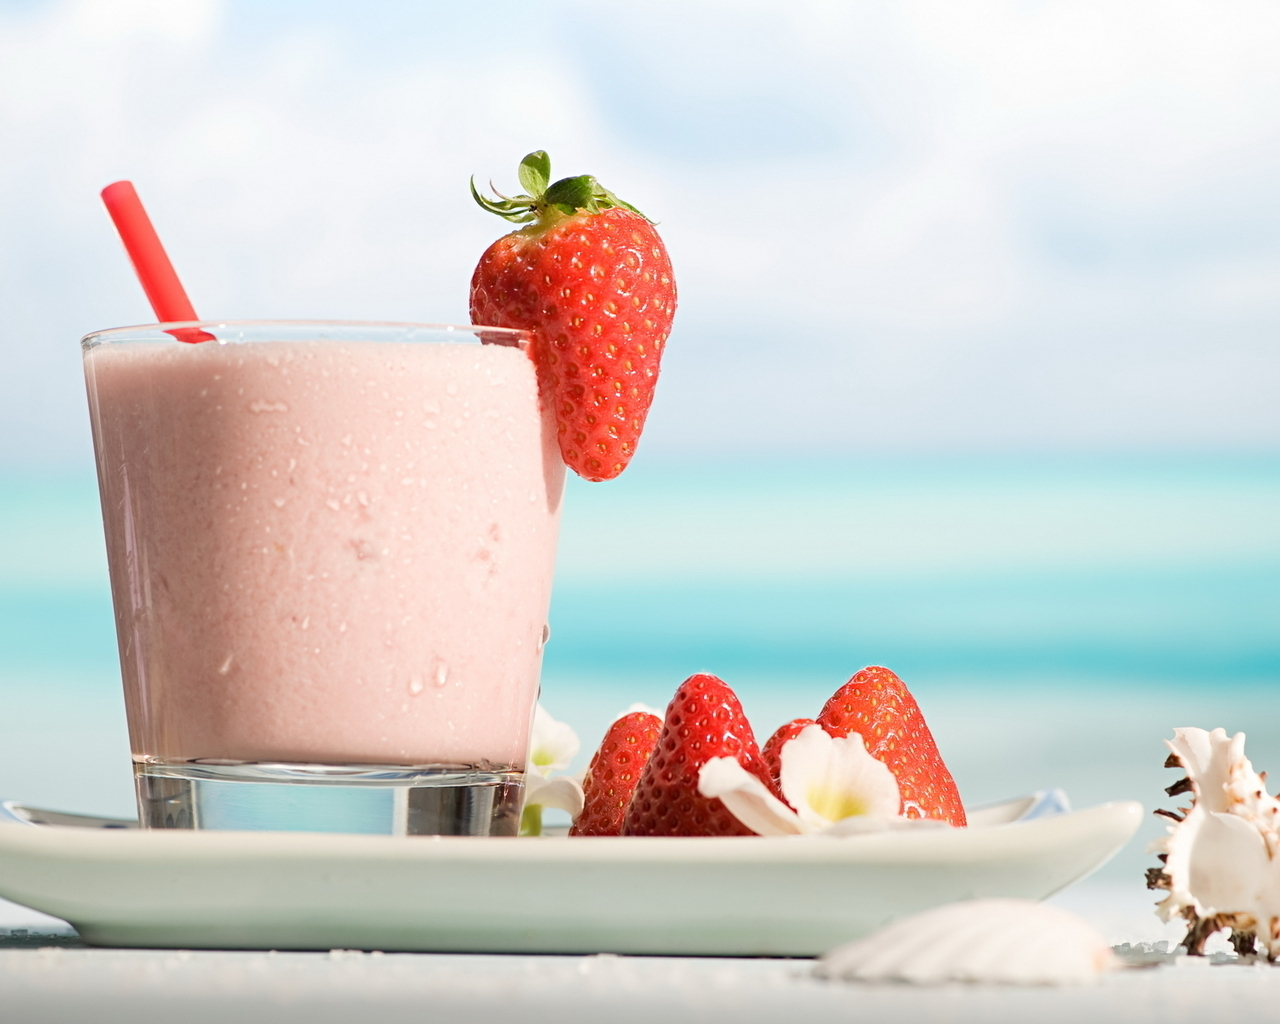 15042 download wallpaper Fruits, Food, Strawberry, Drinks, Berries screensavers and pictures for free